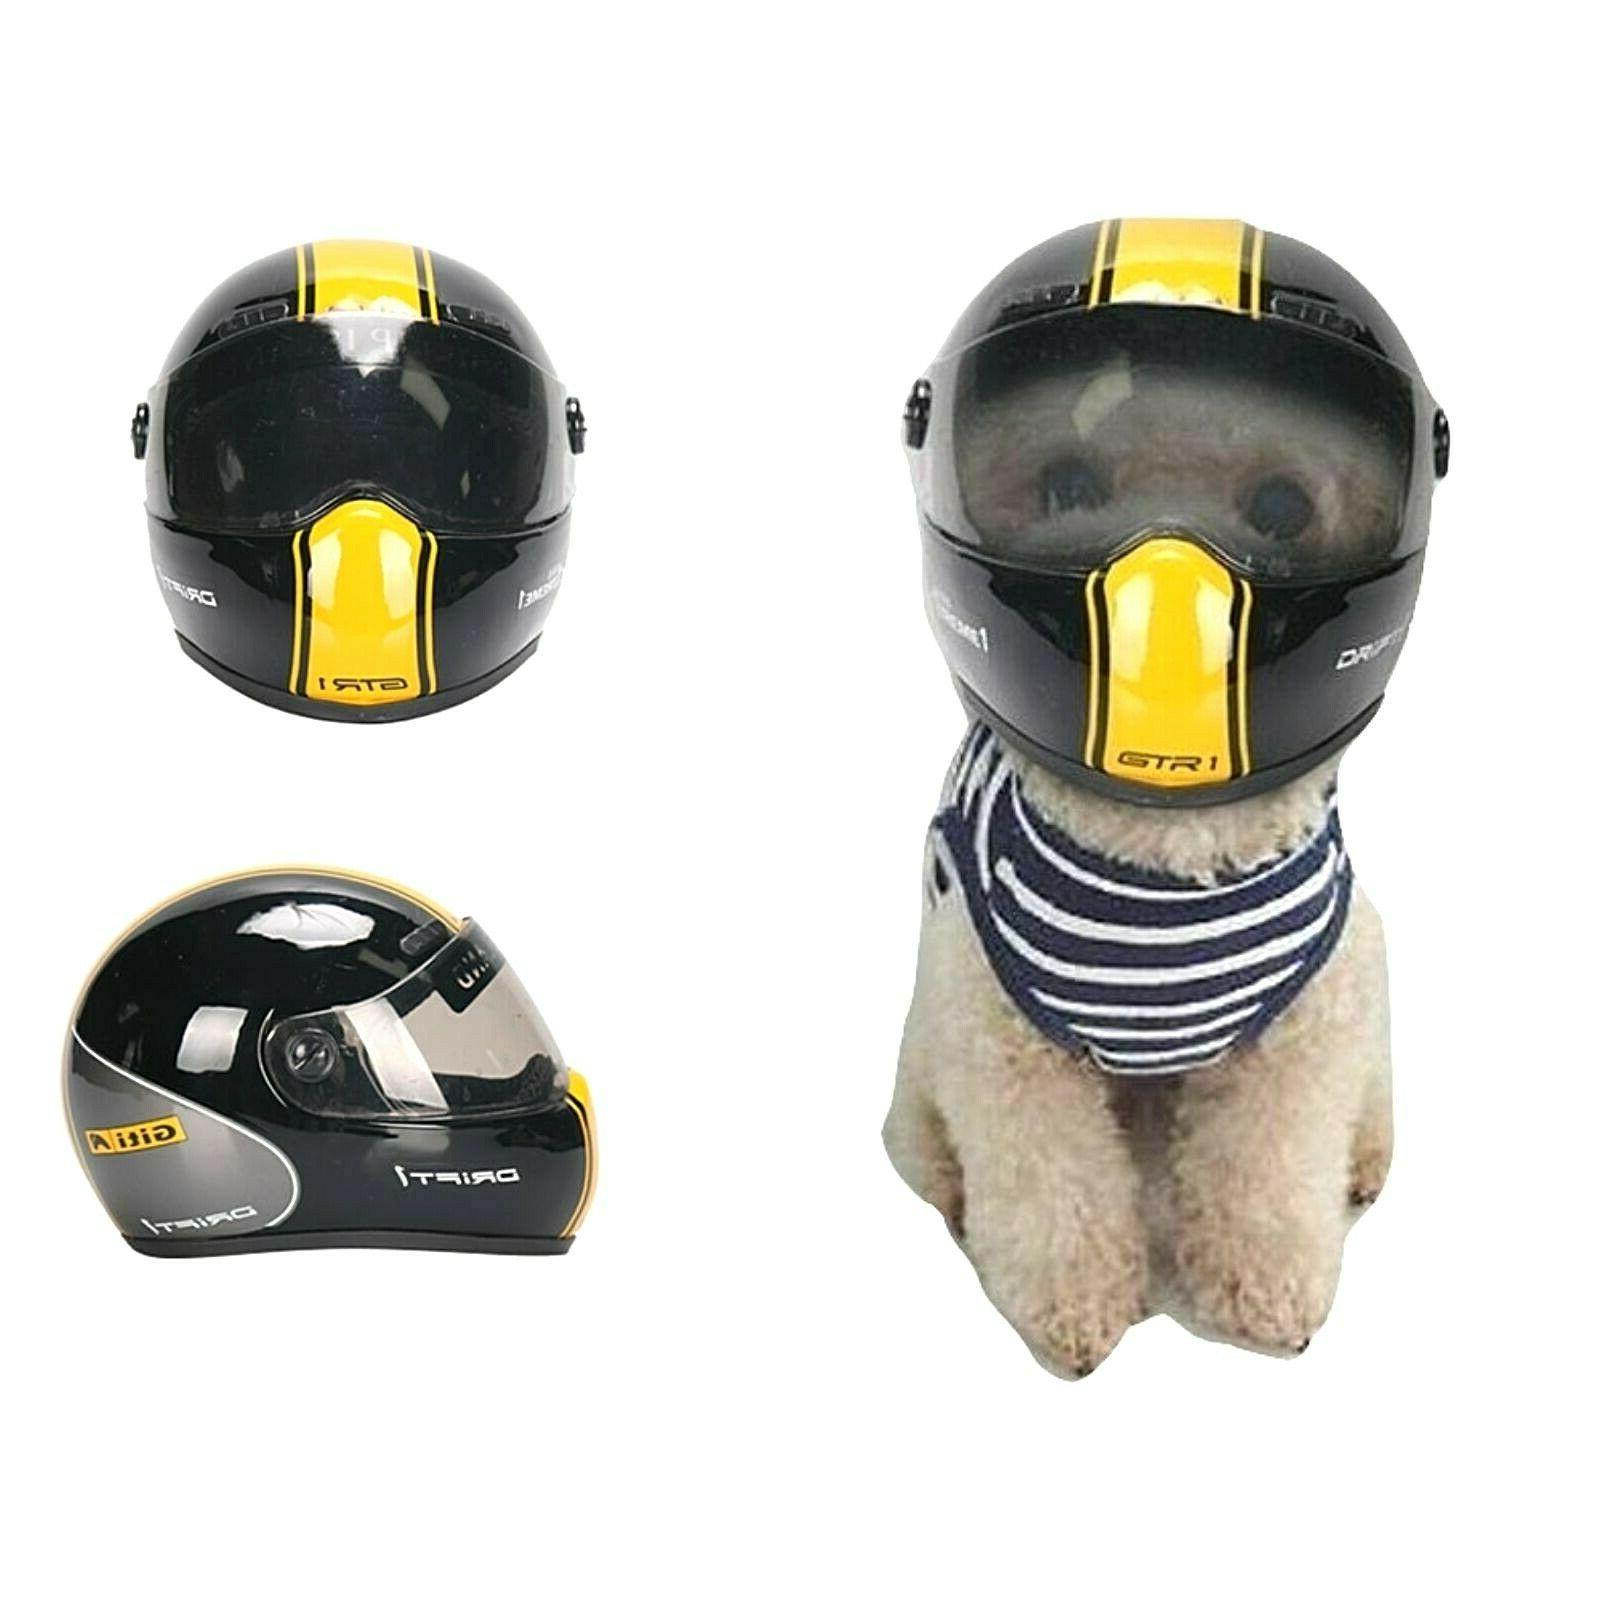 small motorcycle safety helmet for pet cat